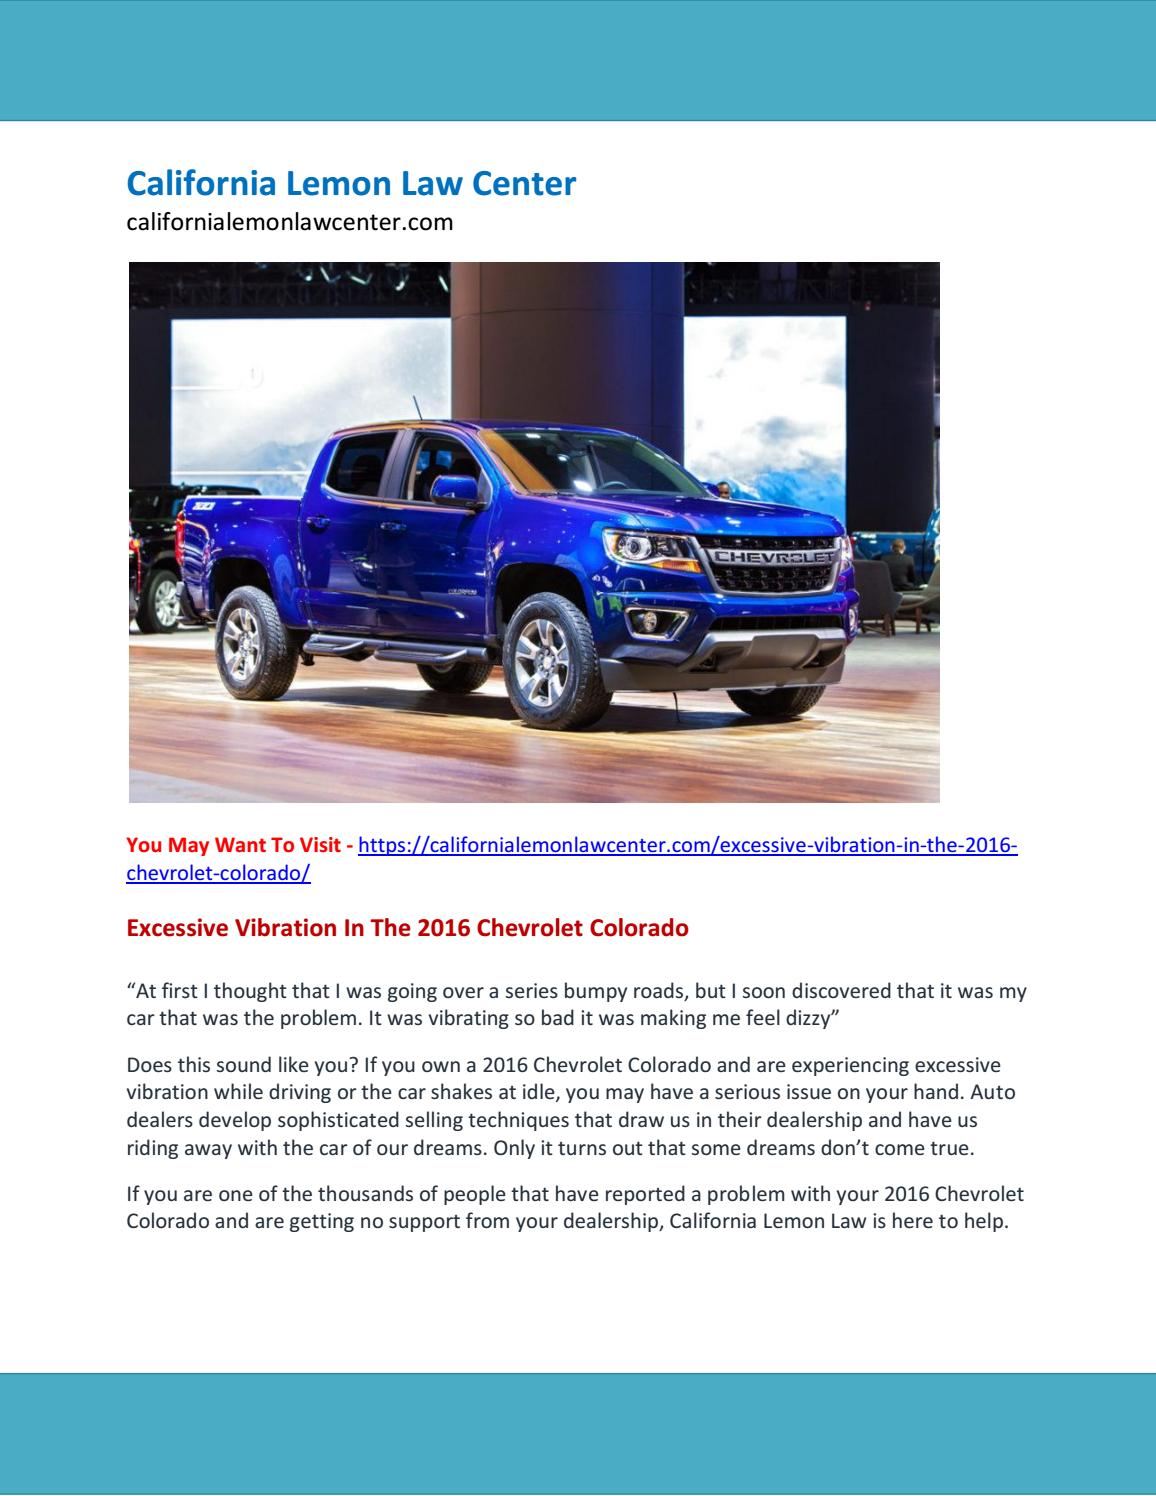 Excessive Vibration In The 2016 Chevrolet Colorado by